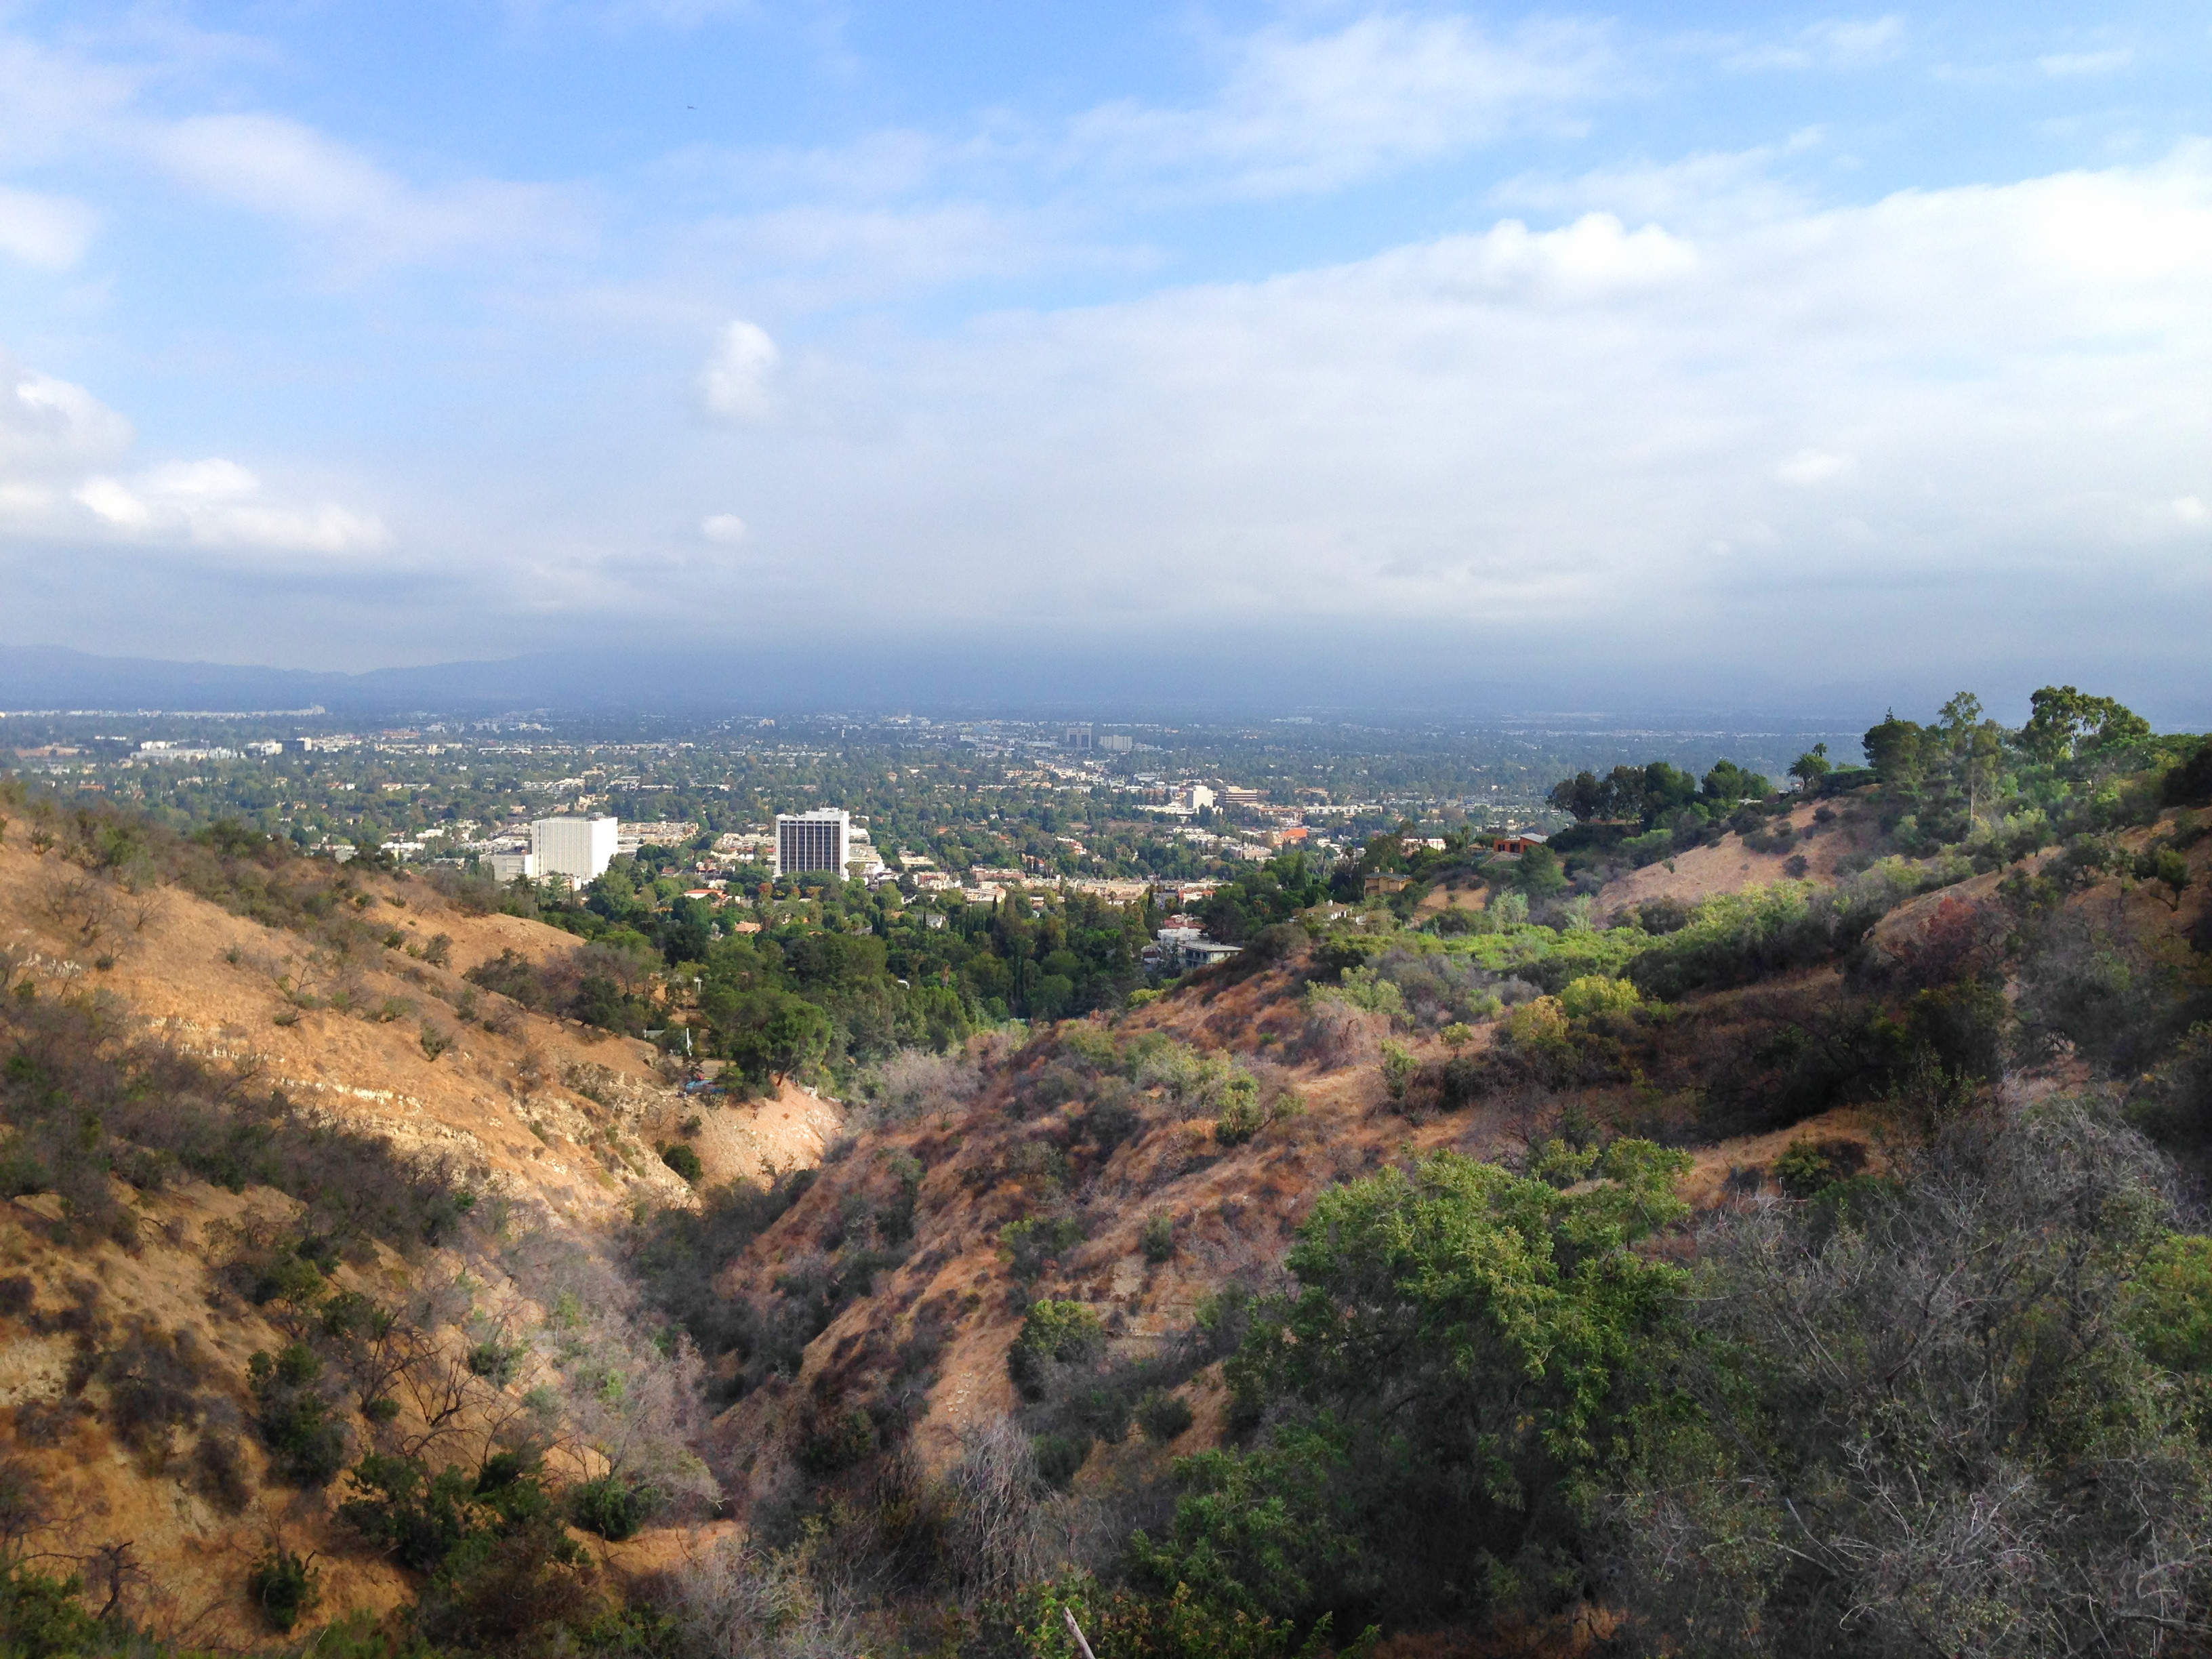 Valley view from top of canyon